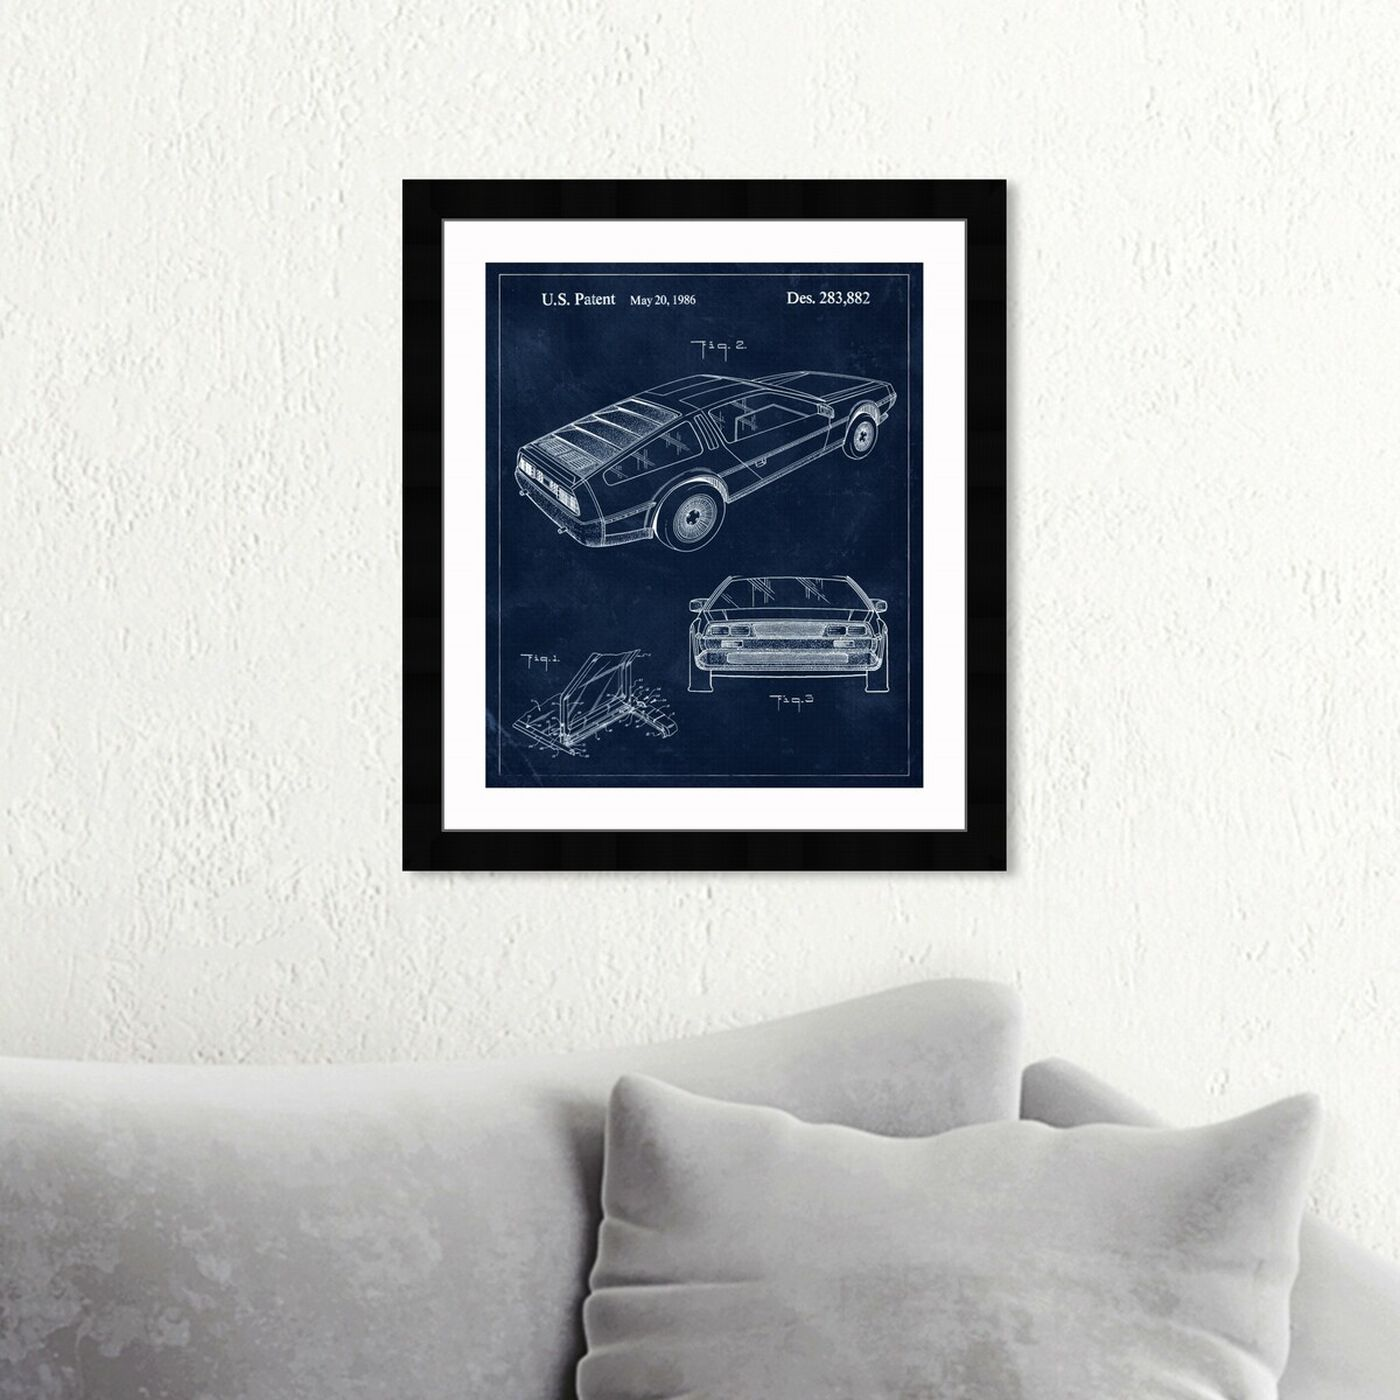 Hanging view of Delorean, 1986 II featuring transportation and automobiles art.